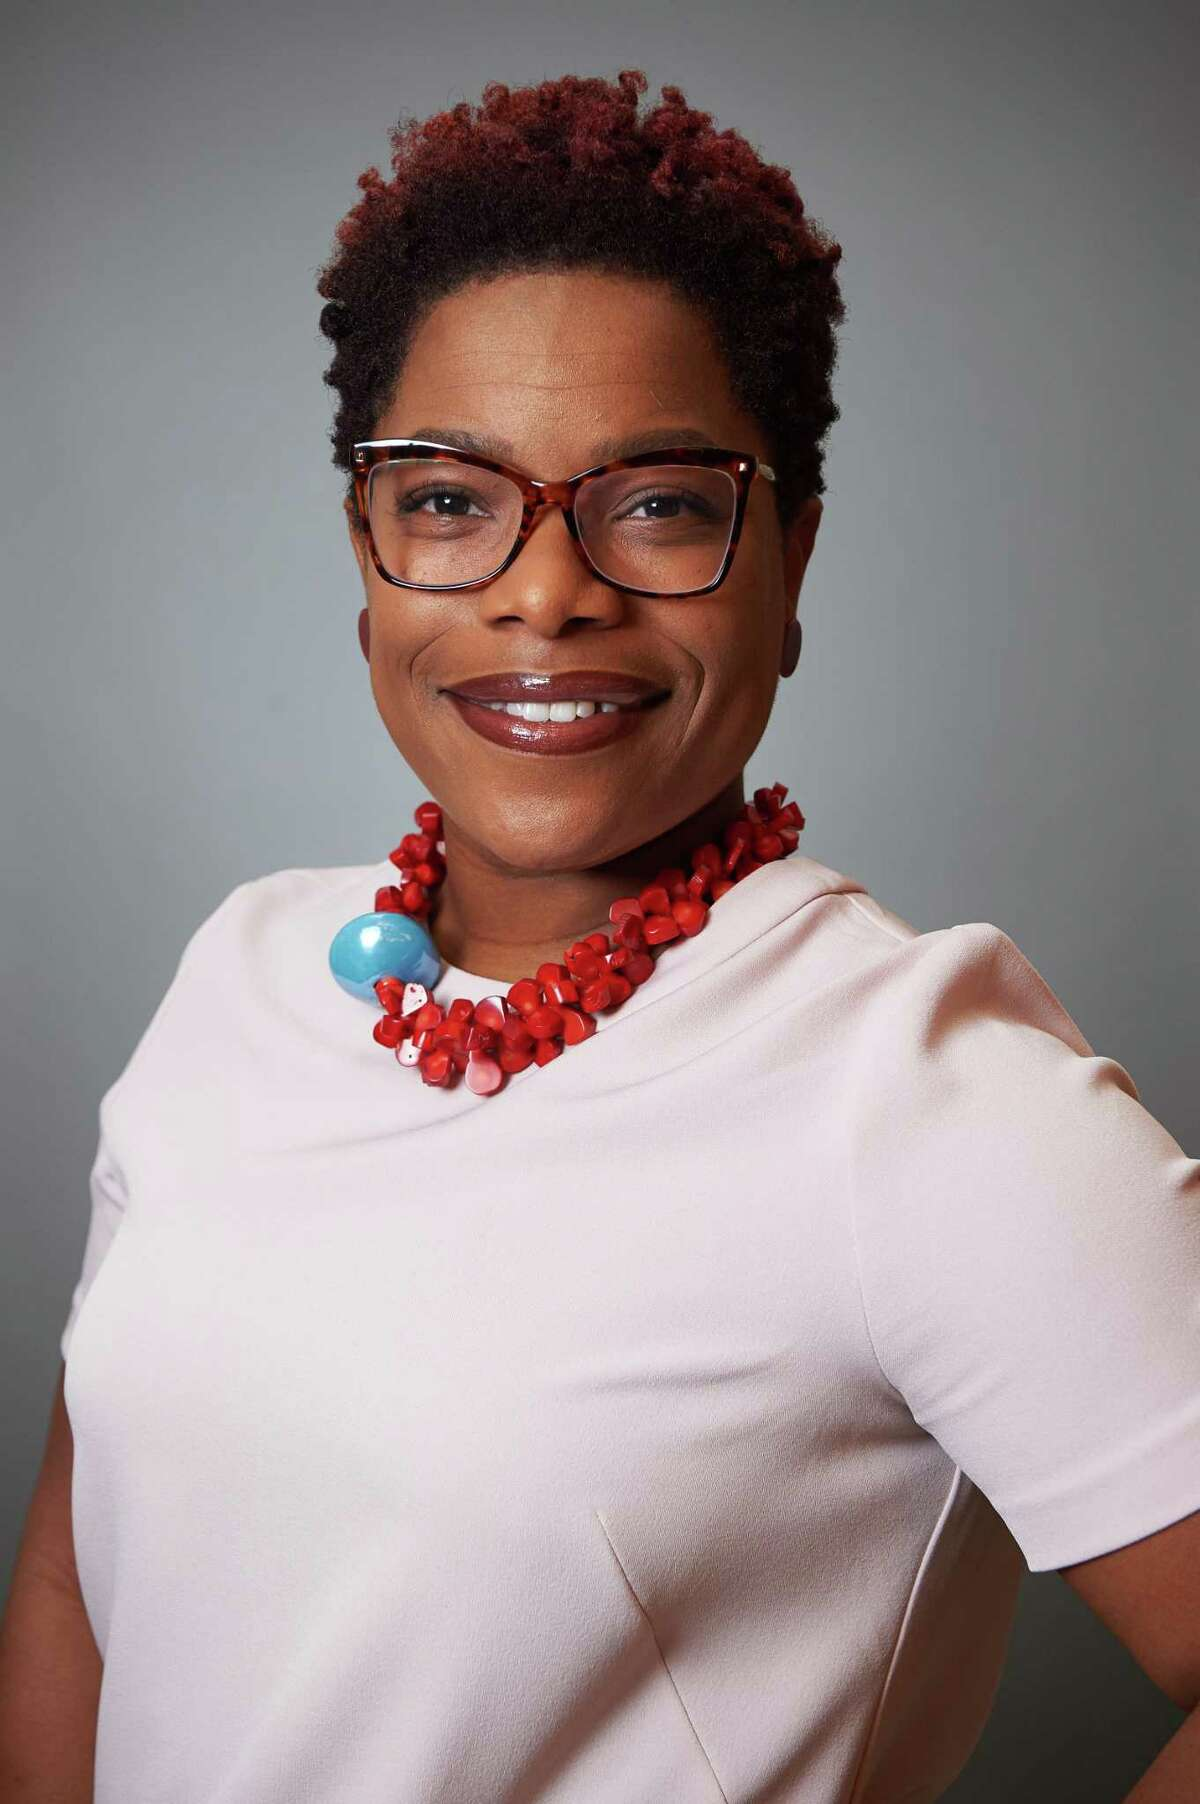 Pace University President Marvin Krislov has named Stamford resident Tiffany Hamilton as Pace University's first Chief Diversity Officer.